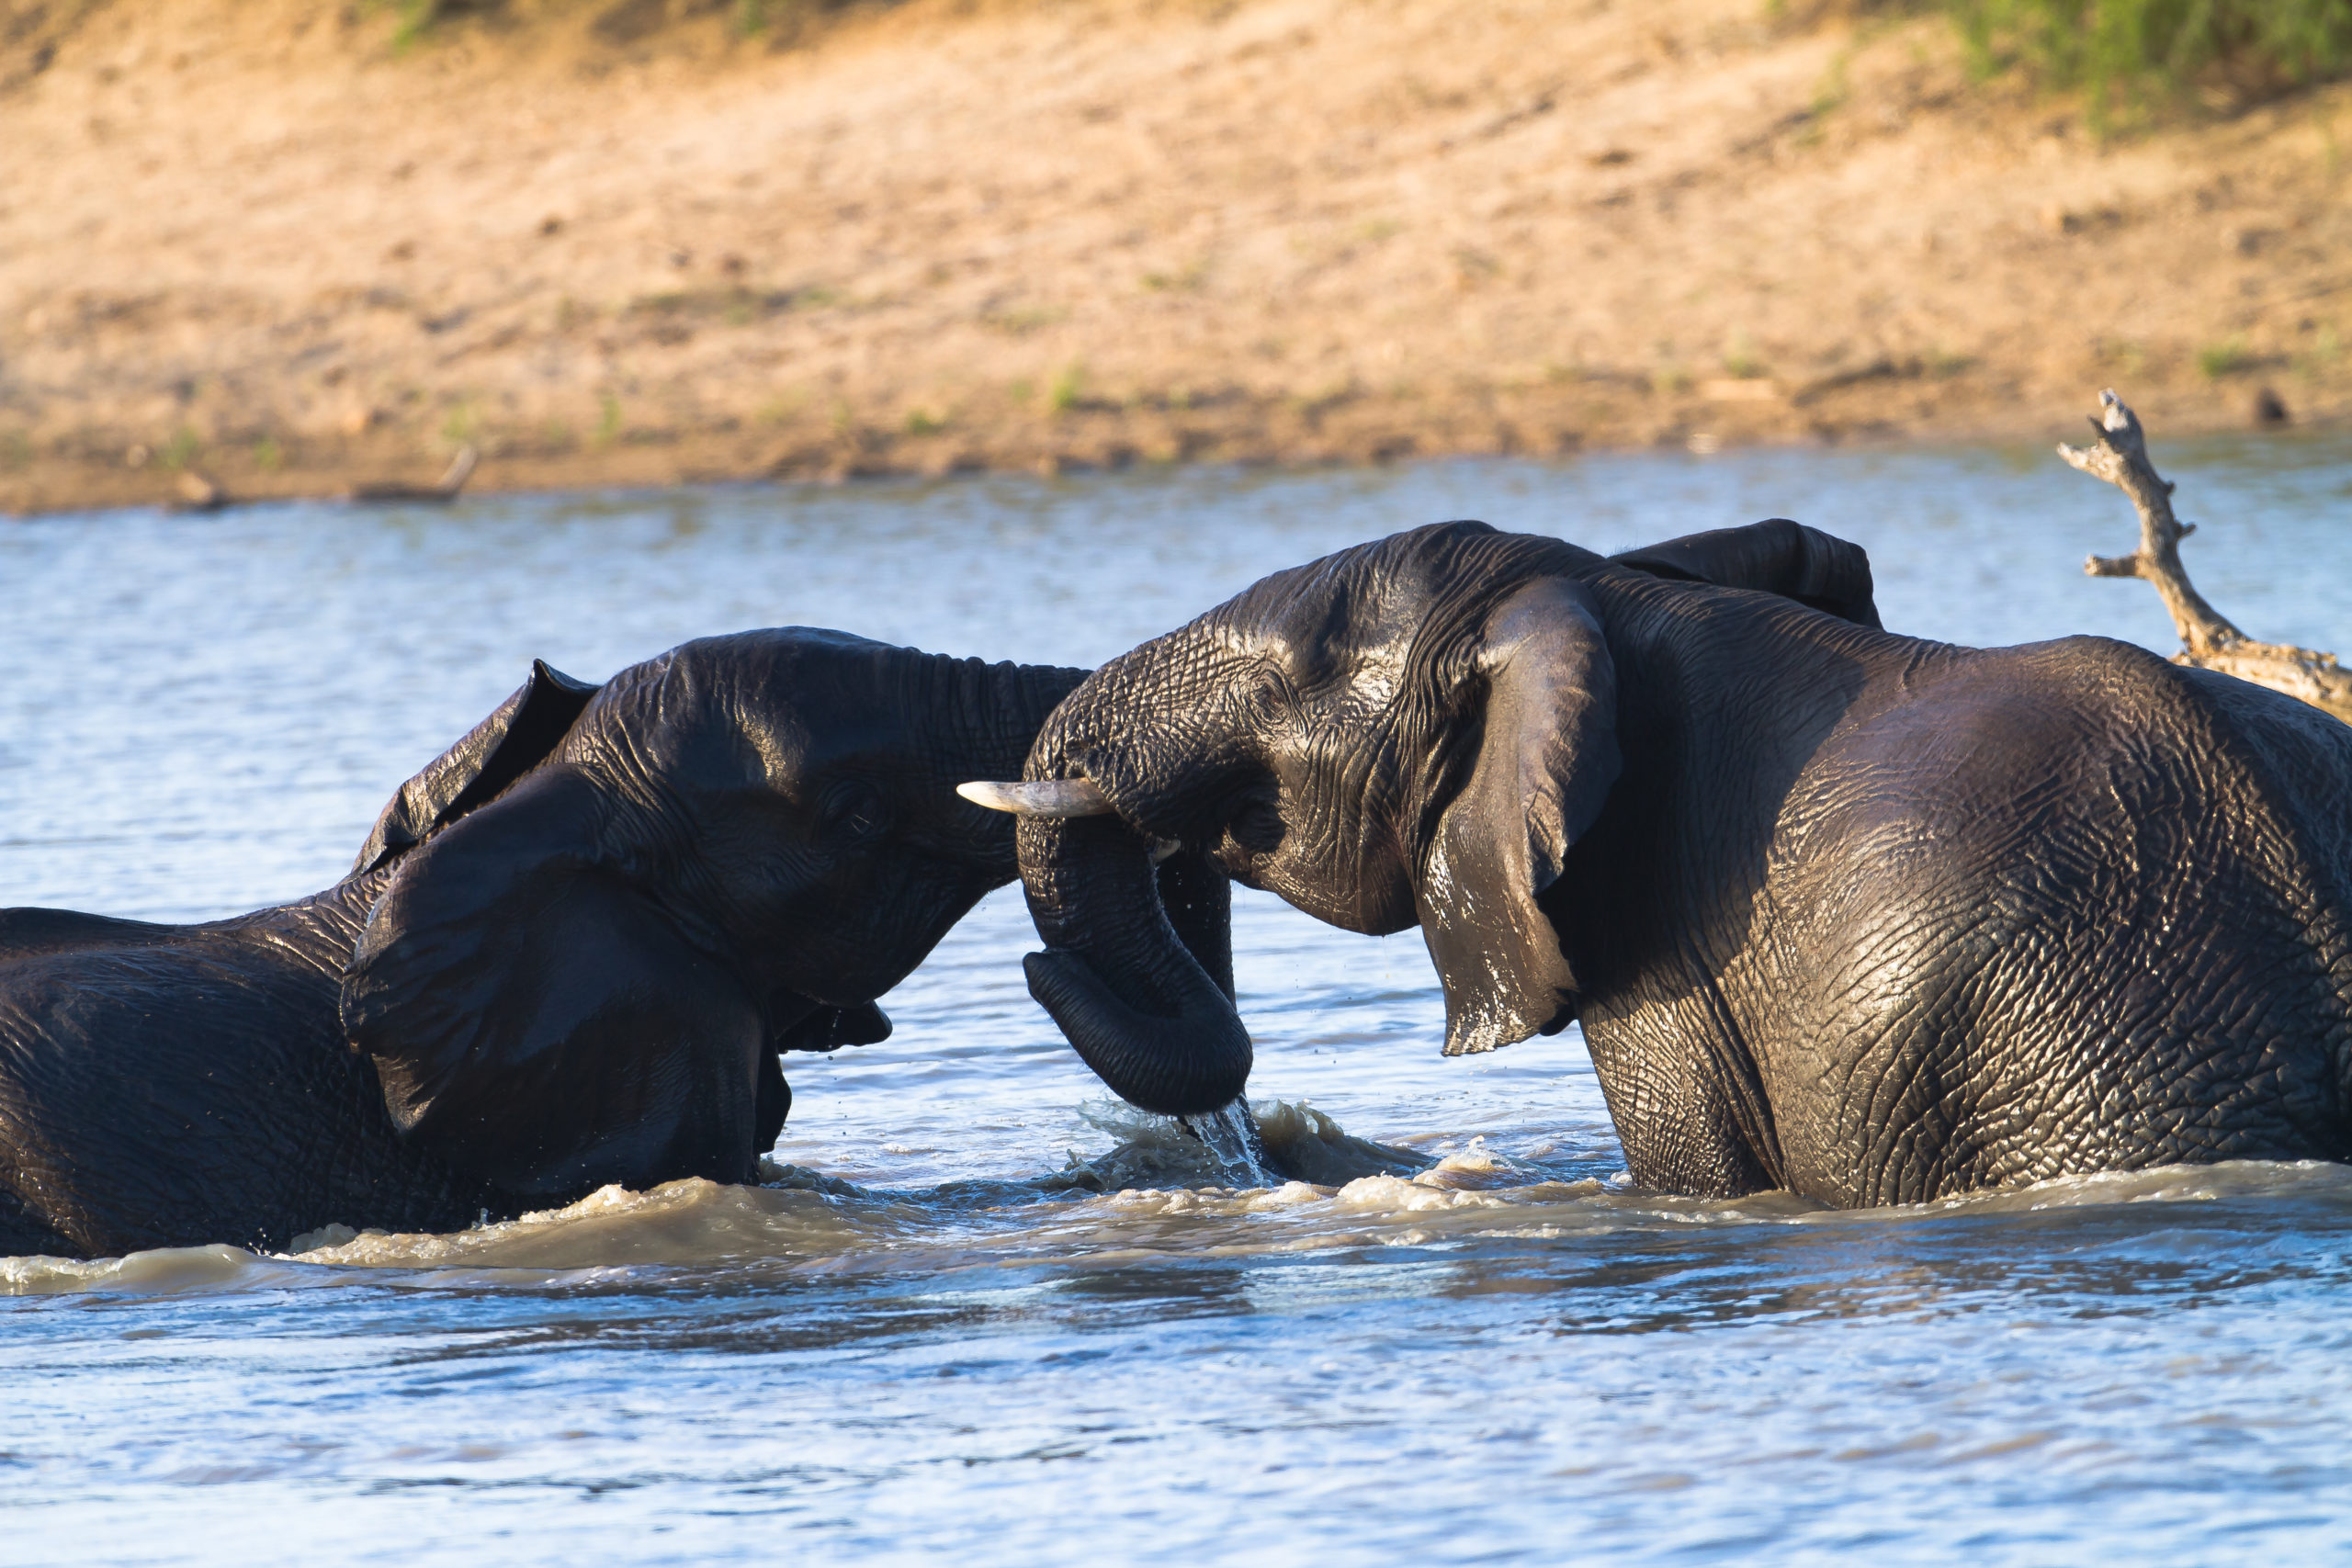 rm-wildlife-elephant-water-south-africa